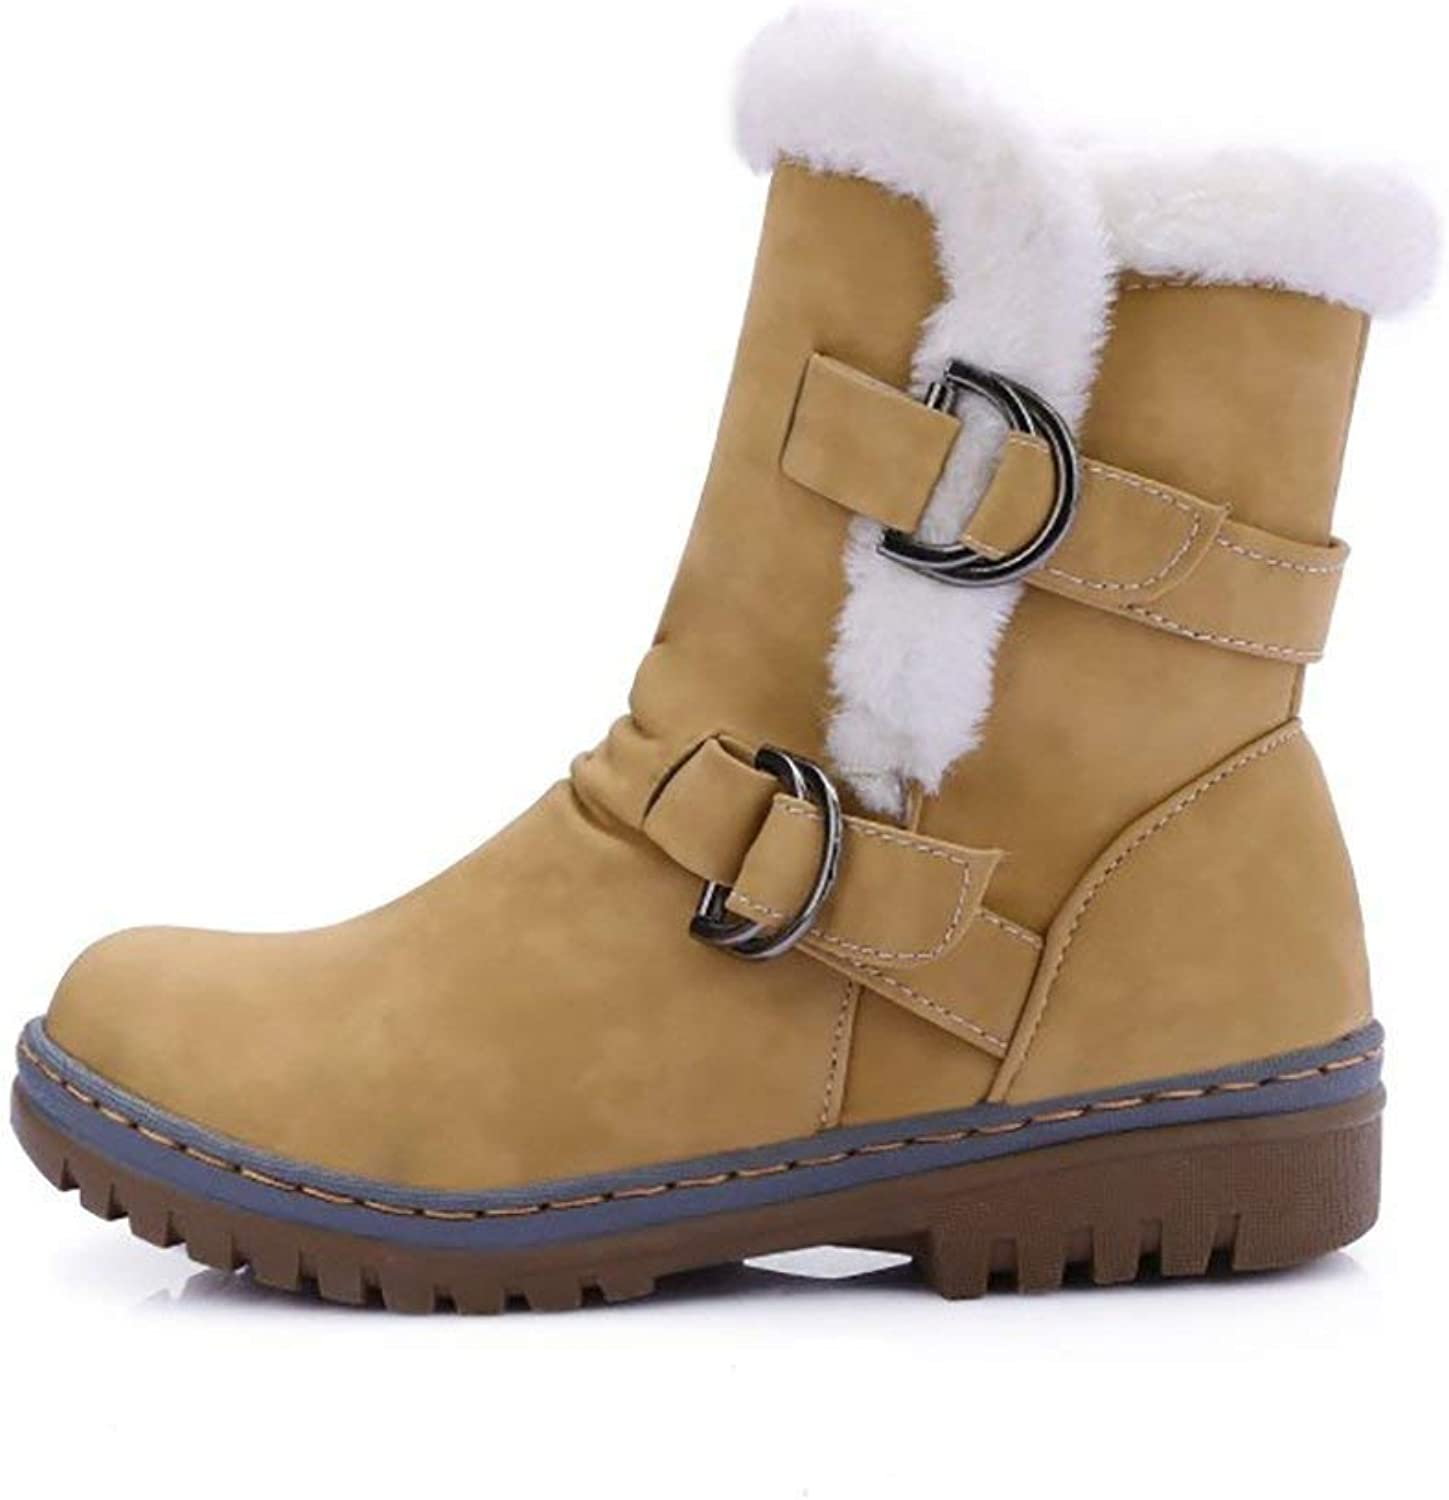 Womens Ankle Boots Flats Fur Warm Winter Snow Booties Buckle Strappy Waterproof Slip on Sneakers shoes